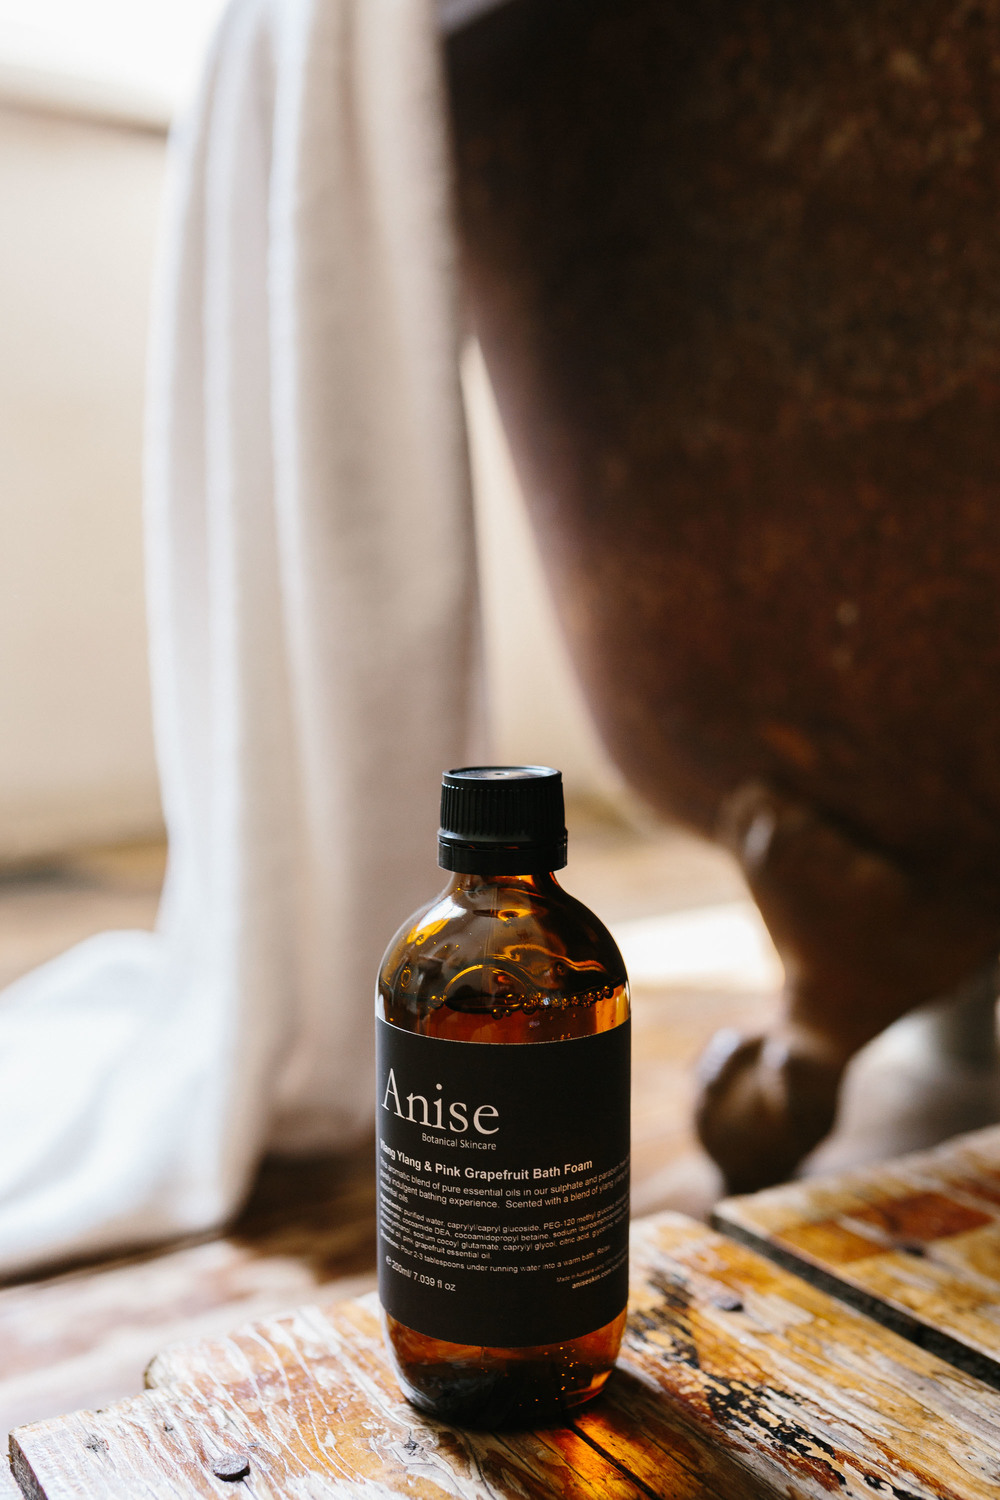 Marnie Hawson, Melbourne lifestyle photographer, for Anise Botanical Skincare